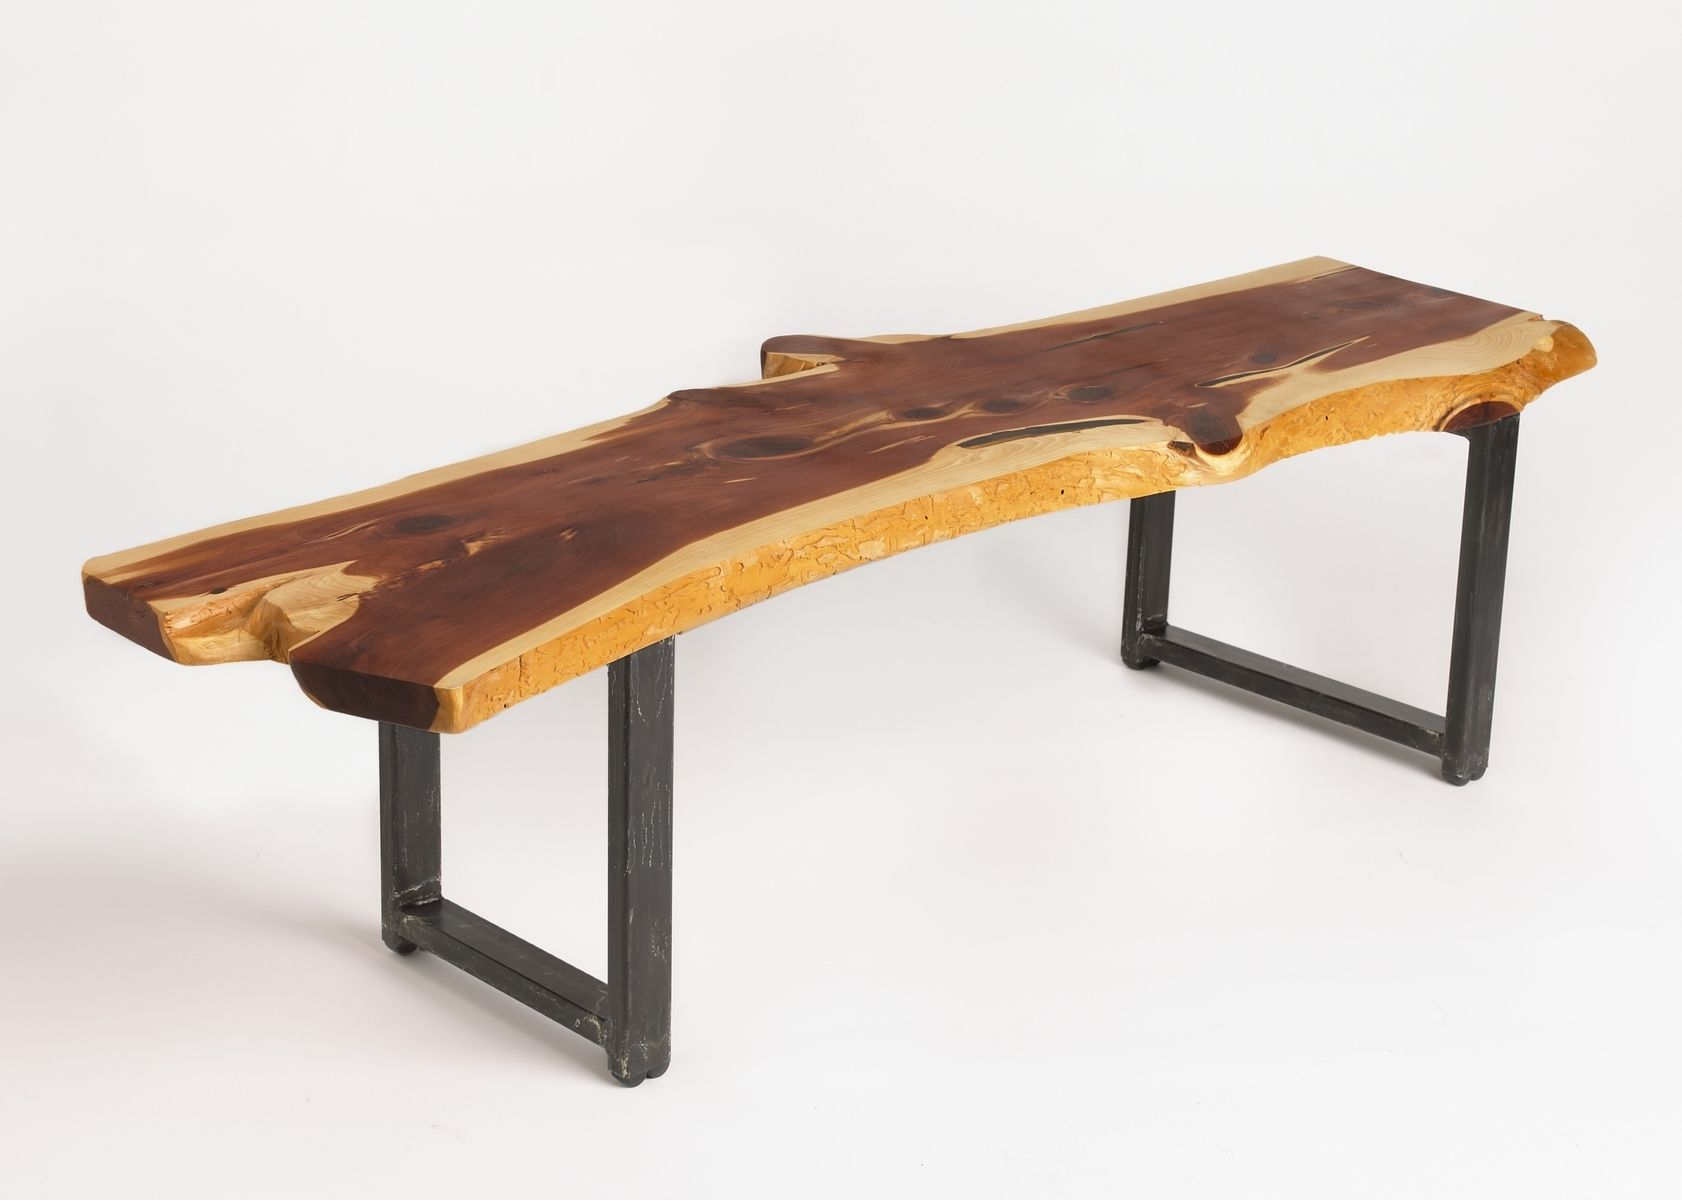 Hand Made Cedar Slab Coffee Table by Randy White Wood Designs